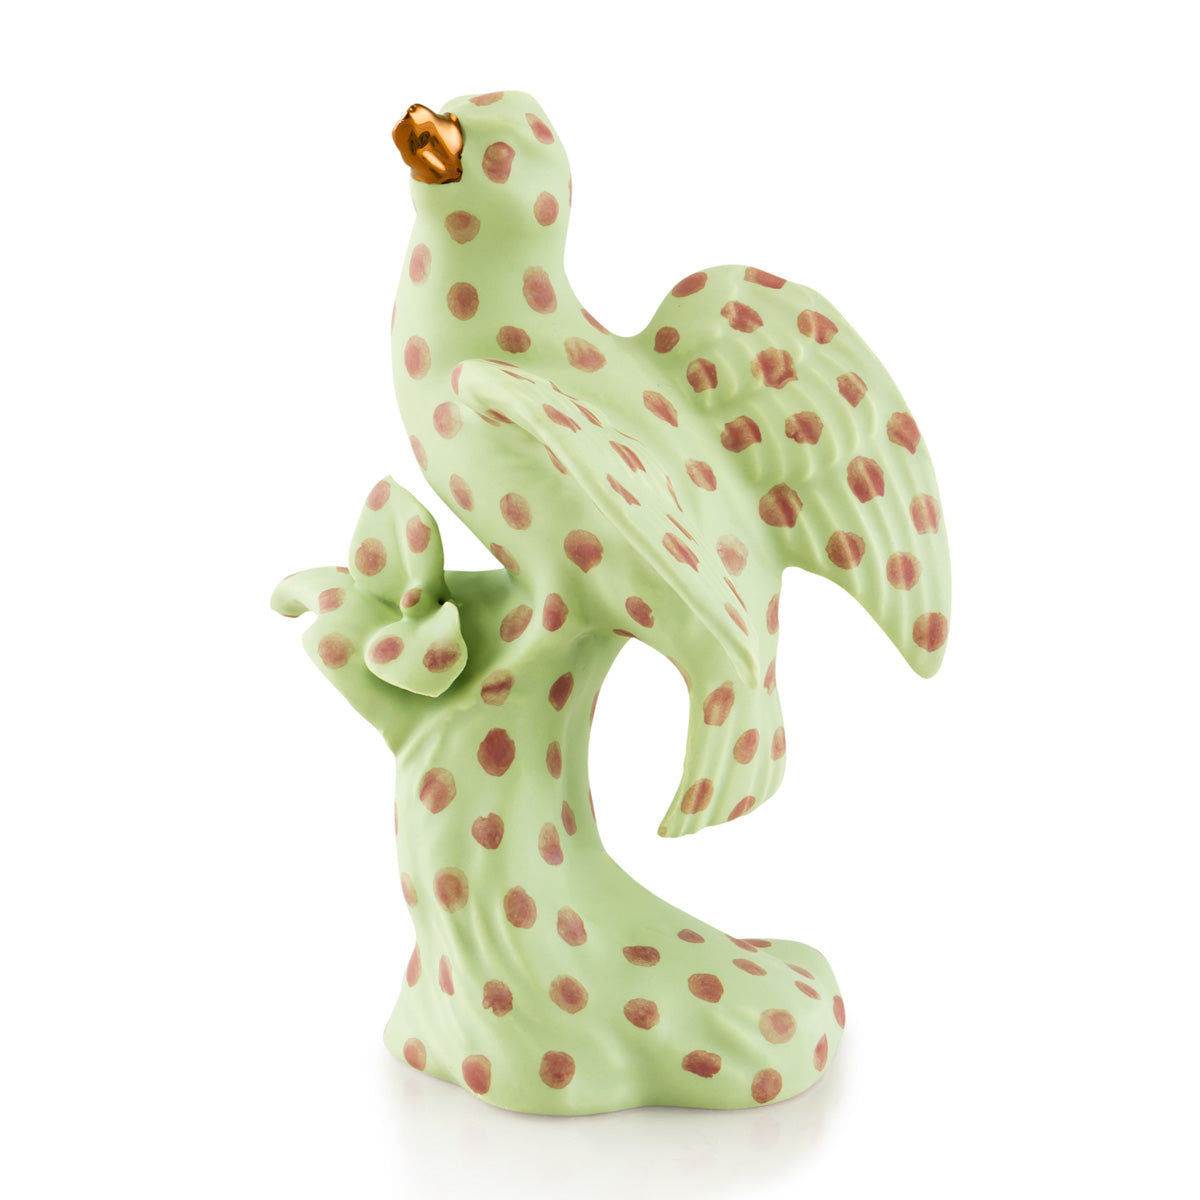 Ceramic bird eating a berry - polka dots